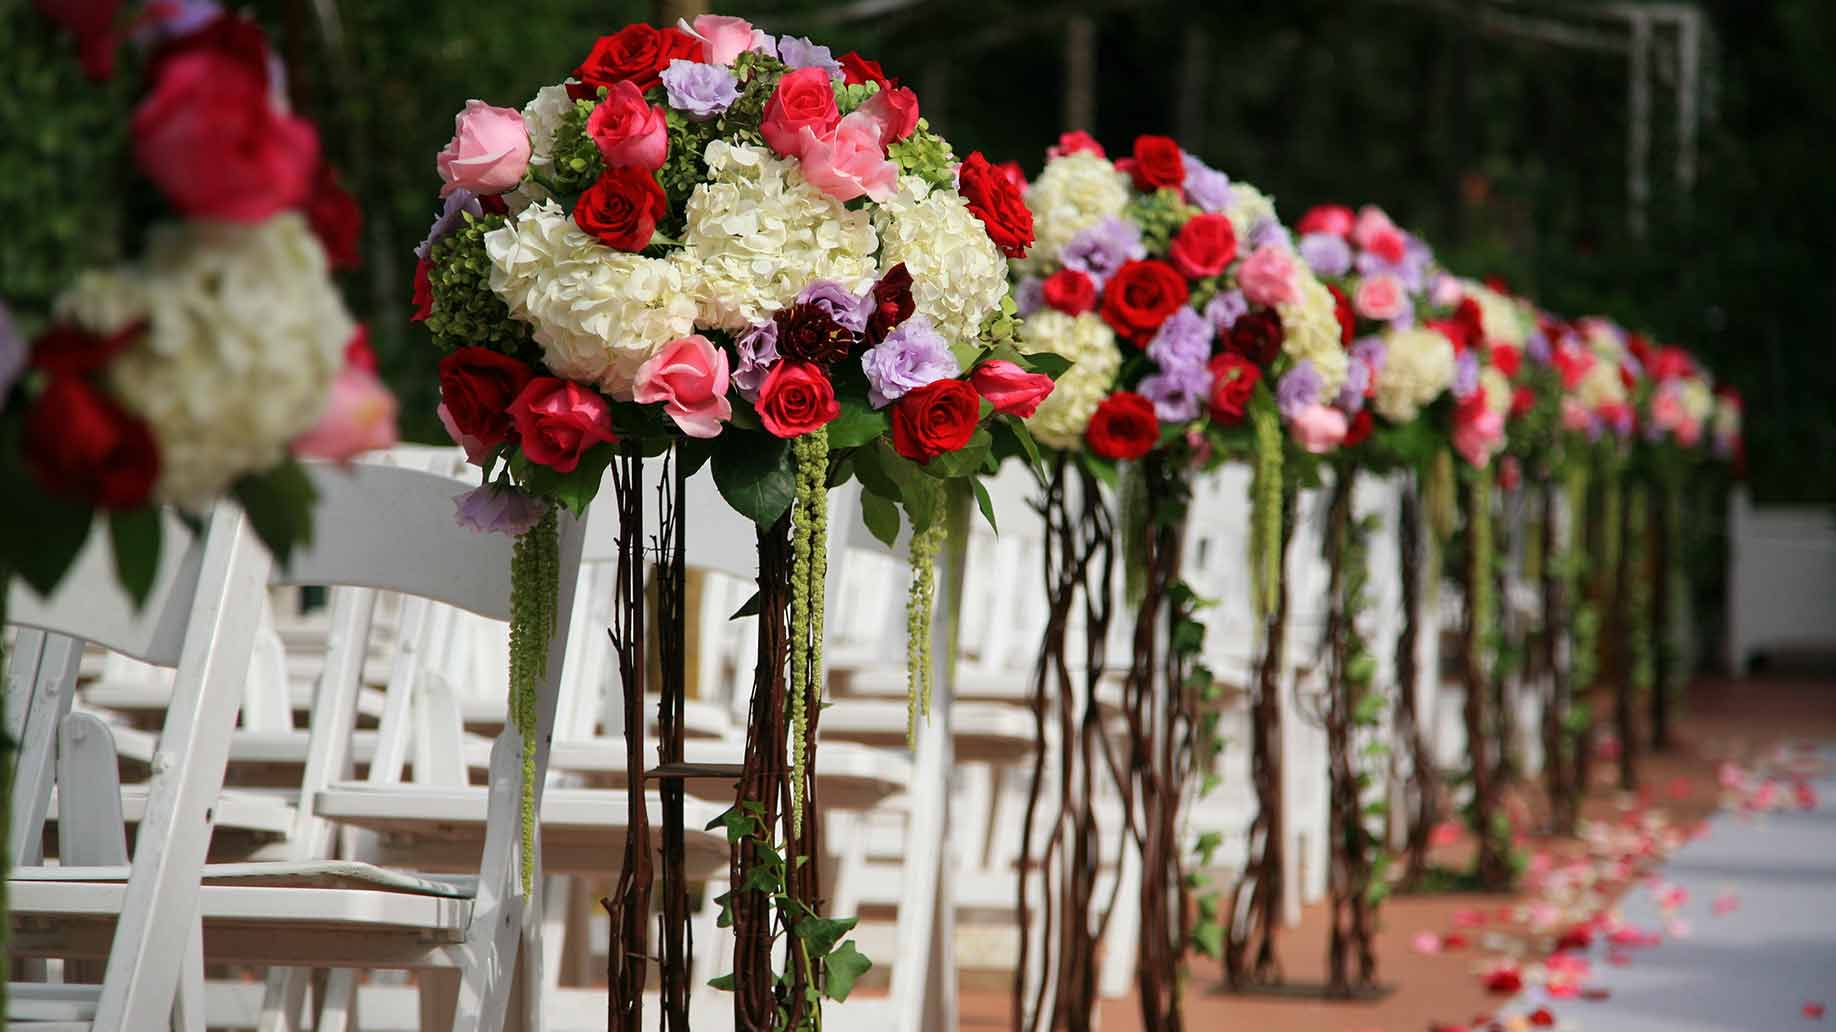 how much do wedding flowers cost - prices